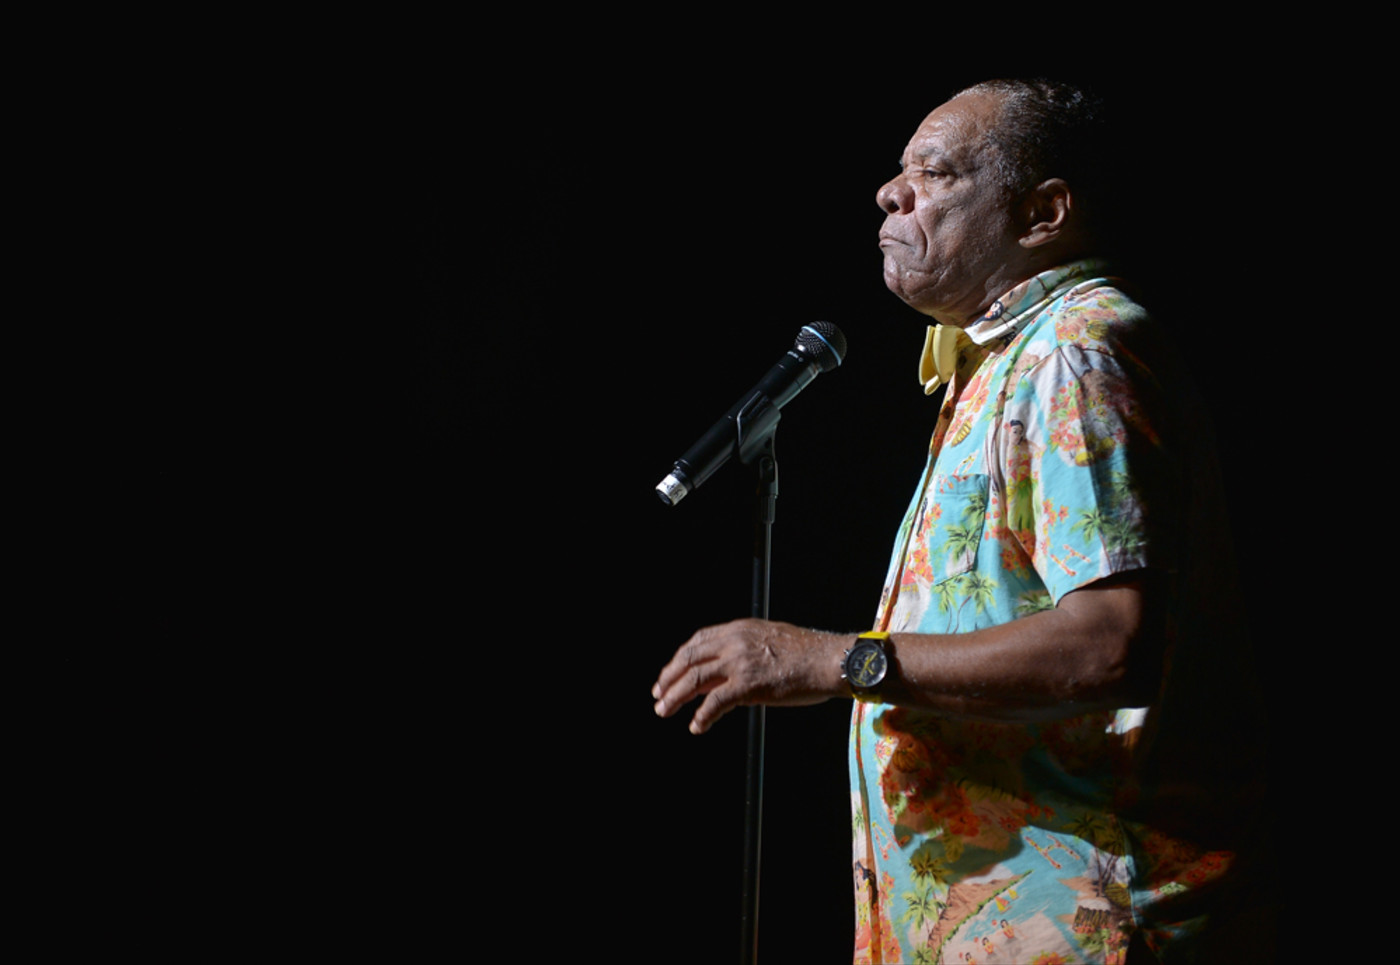 John Witherspoon performs at the 9th Annual Memorial Weekend Comedy Festival